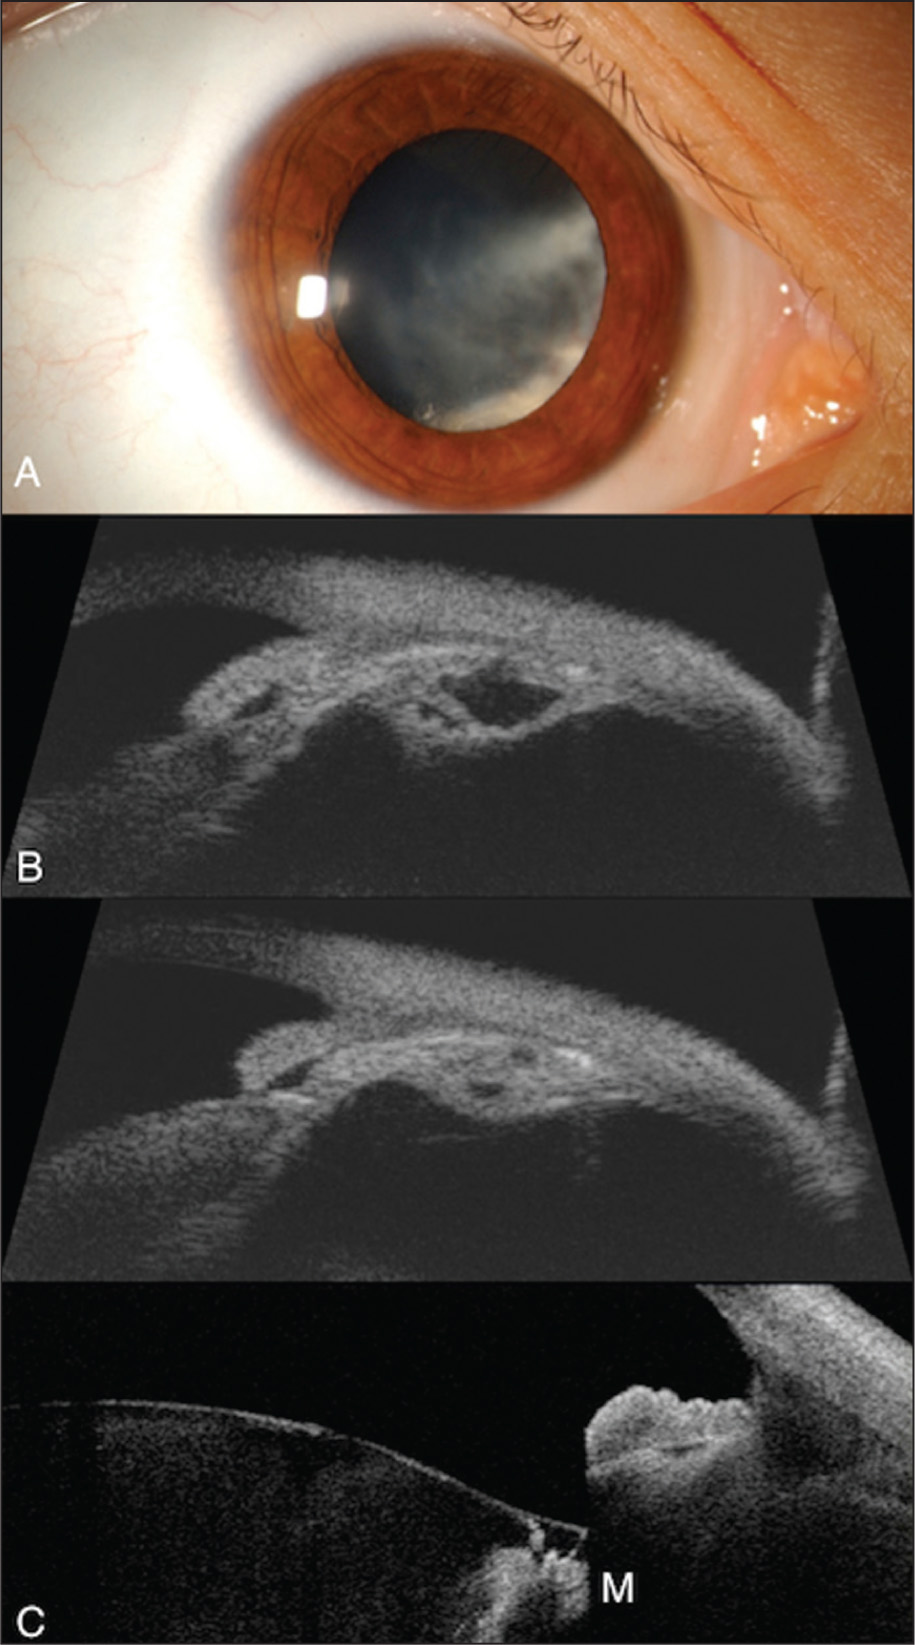 Ciliary body medulloepithelioma in a 9-year-old girl with previously treated pleuropulmonary blastoma. (A) A white mass arising in the ciliary body region inferonasally is noted. The mass extends along the posterior surface of the lens as a cyclitic membrane with ill-defined margins. (B) By ultrasound biomicroscopy (two views), the mass appears relatively thin but extensive, involving 6 clock hours, growing onto the lens capsule, and demonstrating intralesional cysts/cavities consistent with medulloepithelioma. (C) Anterior segment optical coherence tomography shows the dilated iris with mass (M) immediately posterior and extending along the zonule to the back and front surface of the lens.